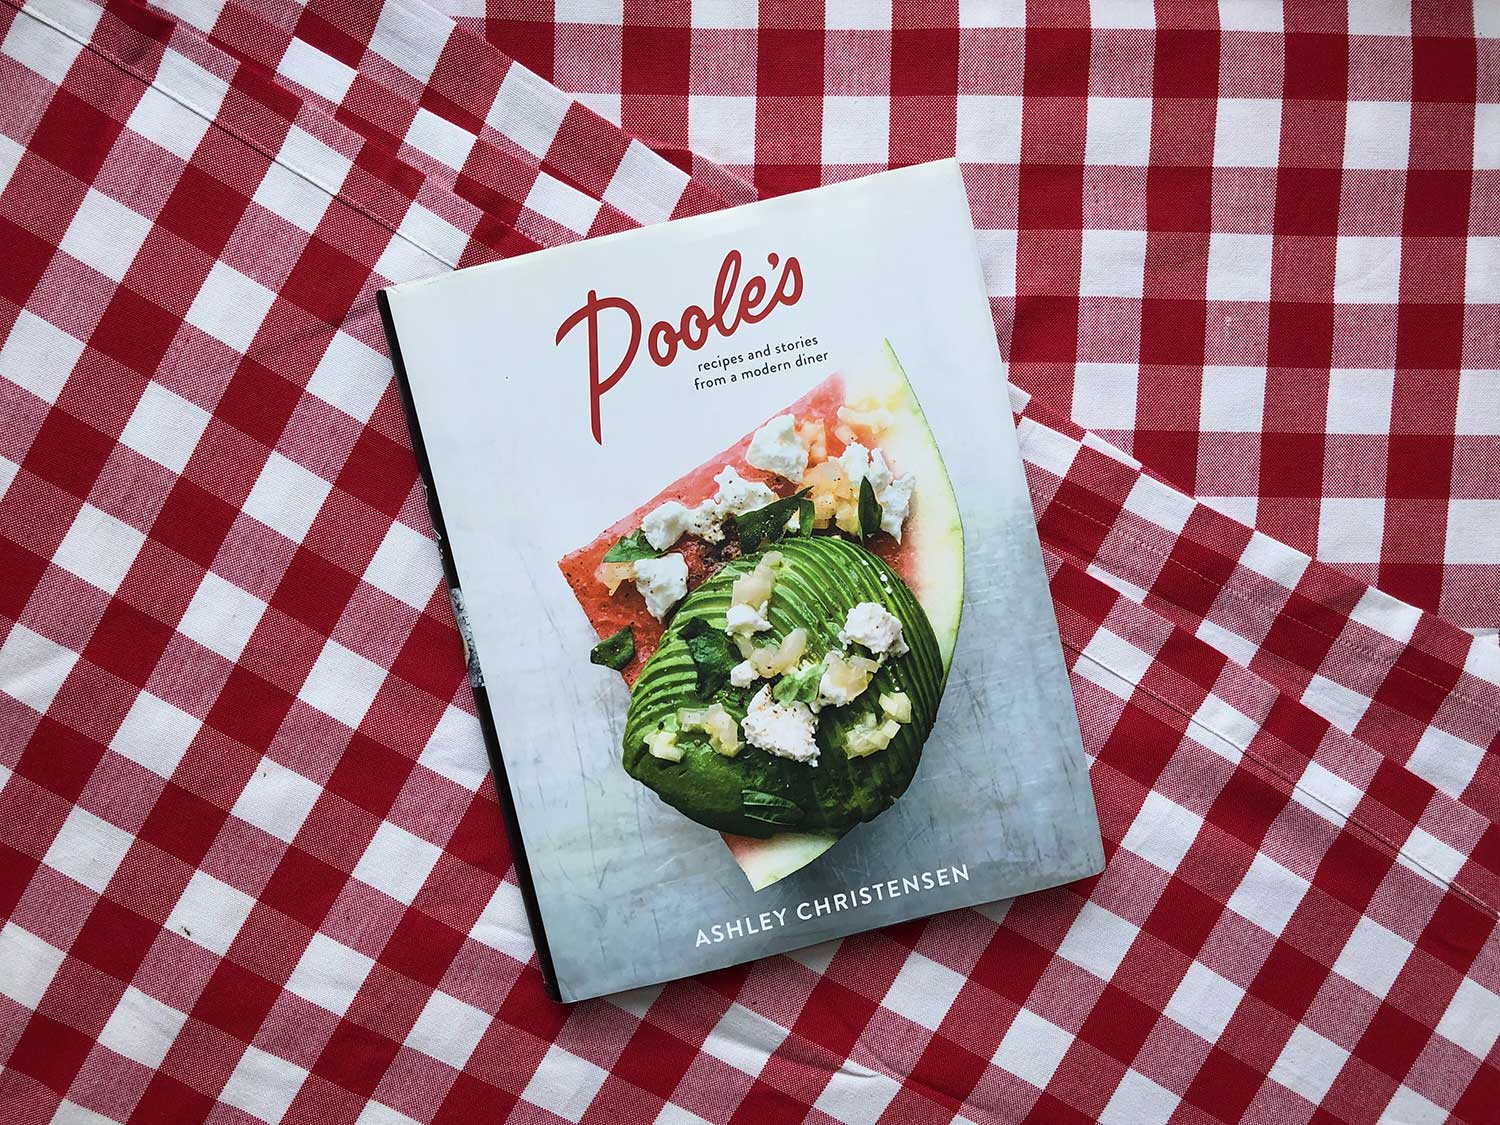 Transport Yourself to Poole's with This Month's Cookbook Club Pick